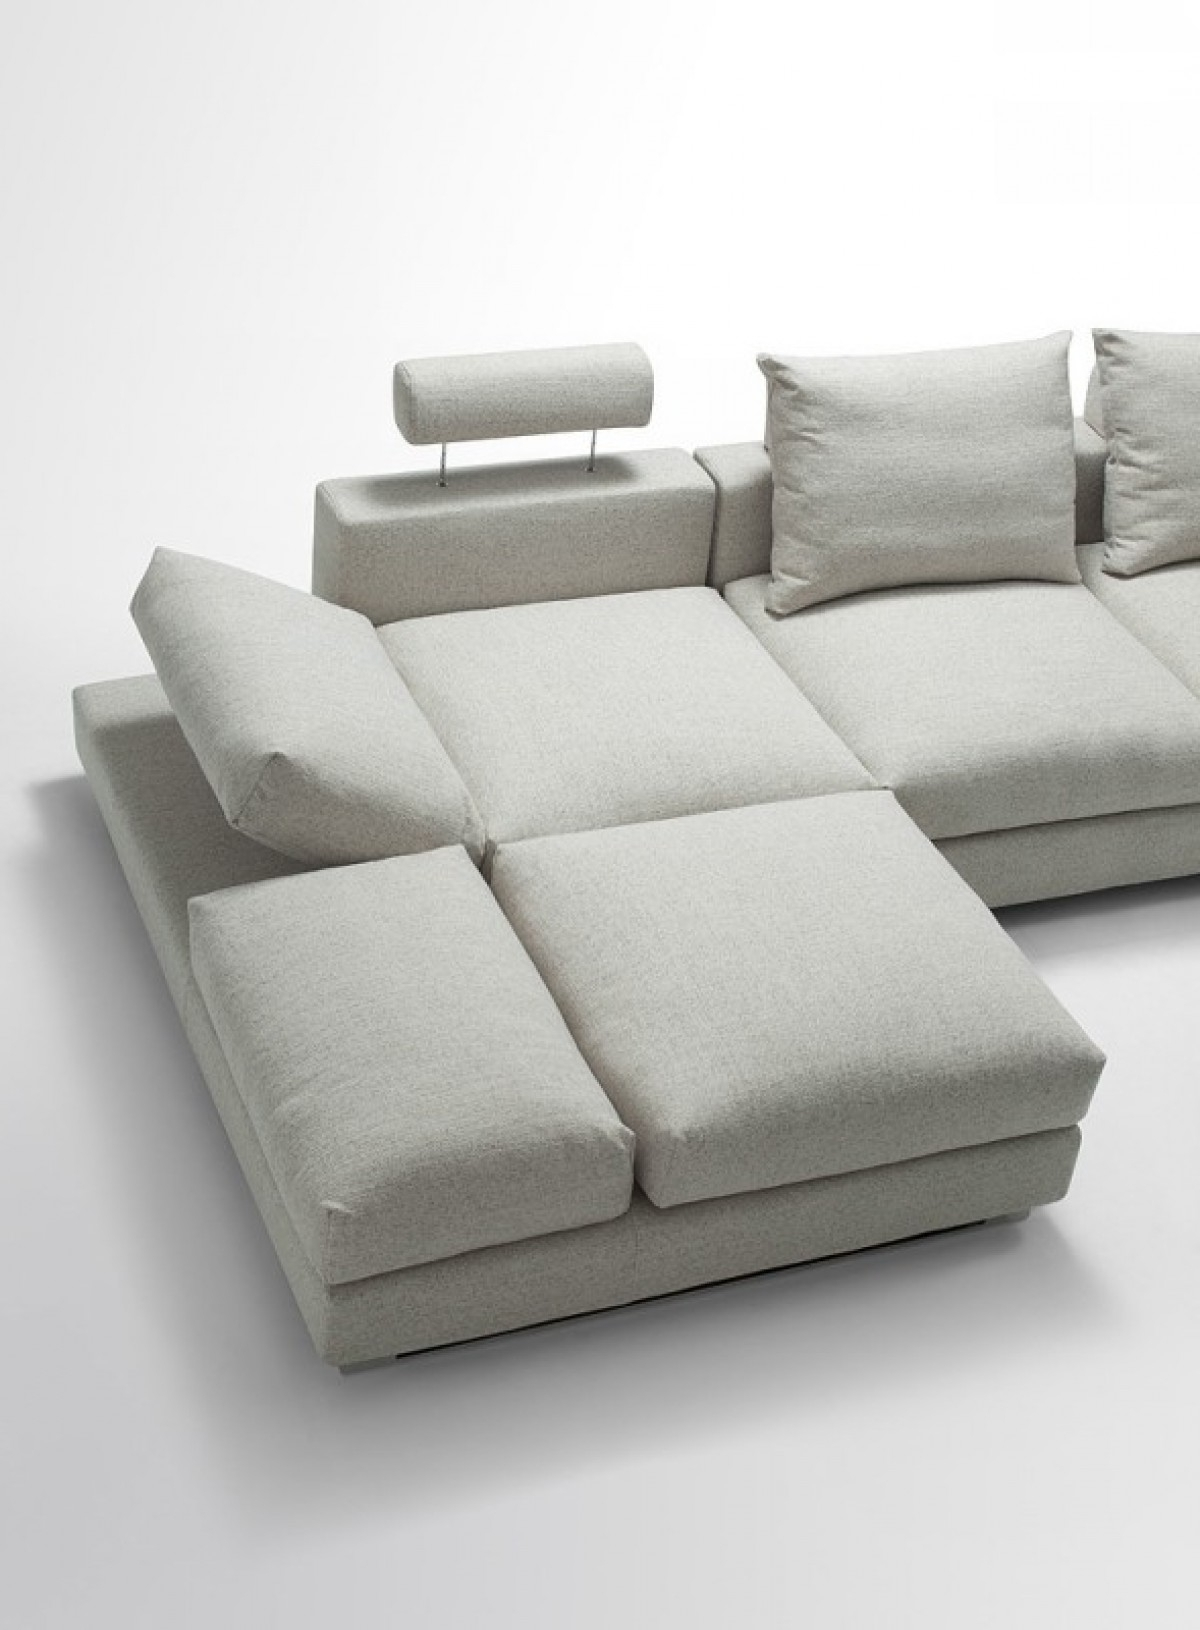 Divani Casa Vasto – Modern Fabric Sectional Sofa With Down Feather For Well Known Down Feather Sectional Sofas (View 12 of 15)